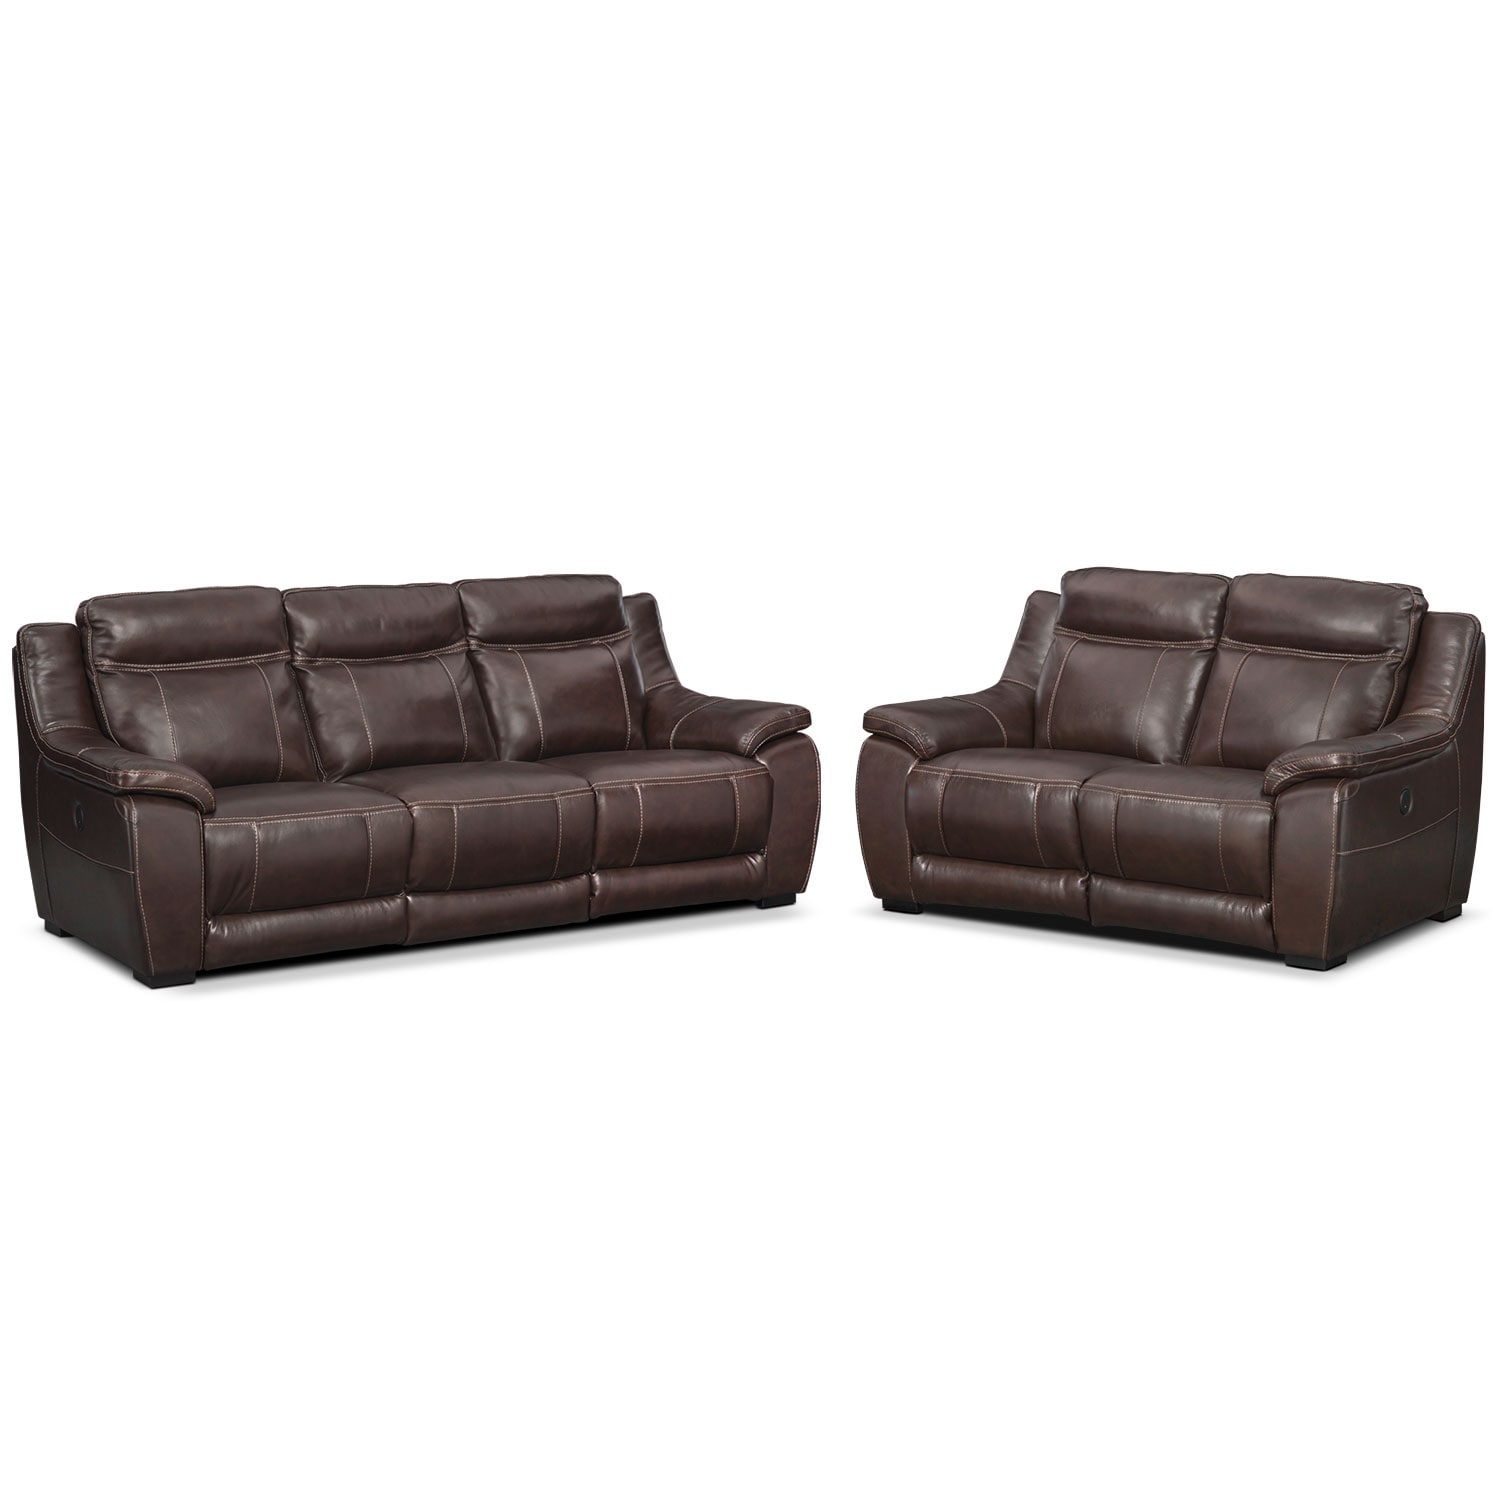 Lido power reclining sofa and reclining loveseat set brown value city furniture Power loveseat recliner